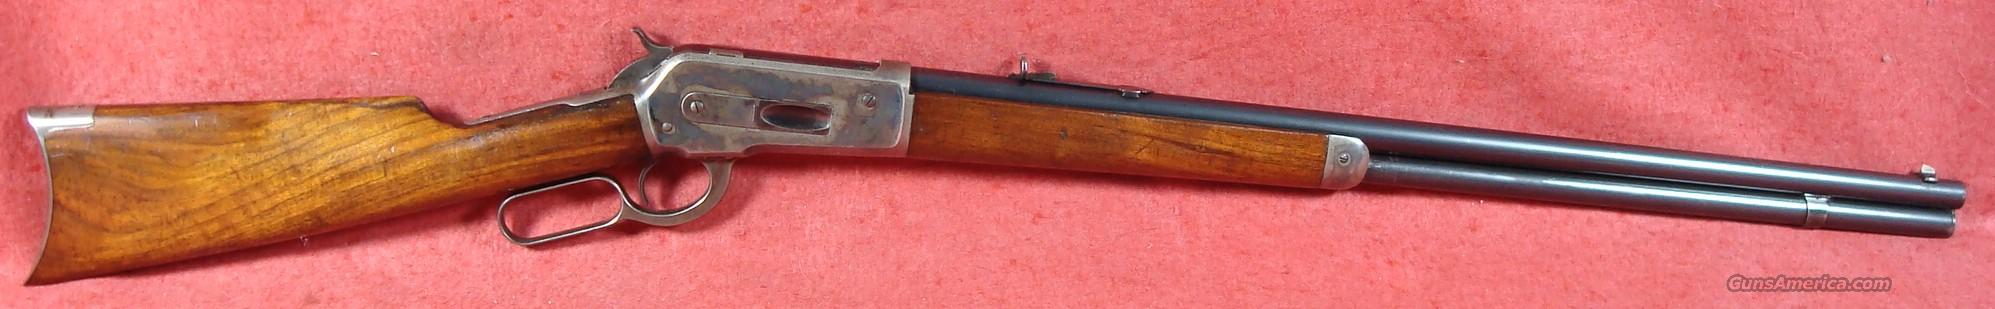 Winchester 1886 .40-65 WCF, Antique!  Guns > Rifles > Winchester Rifles - Pre-1899 Lever